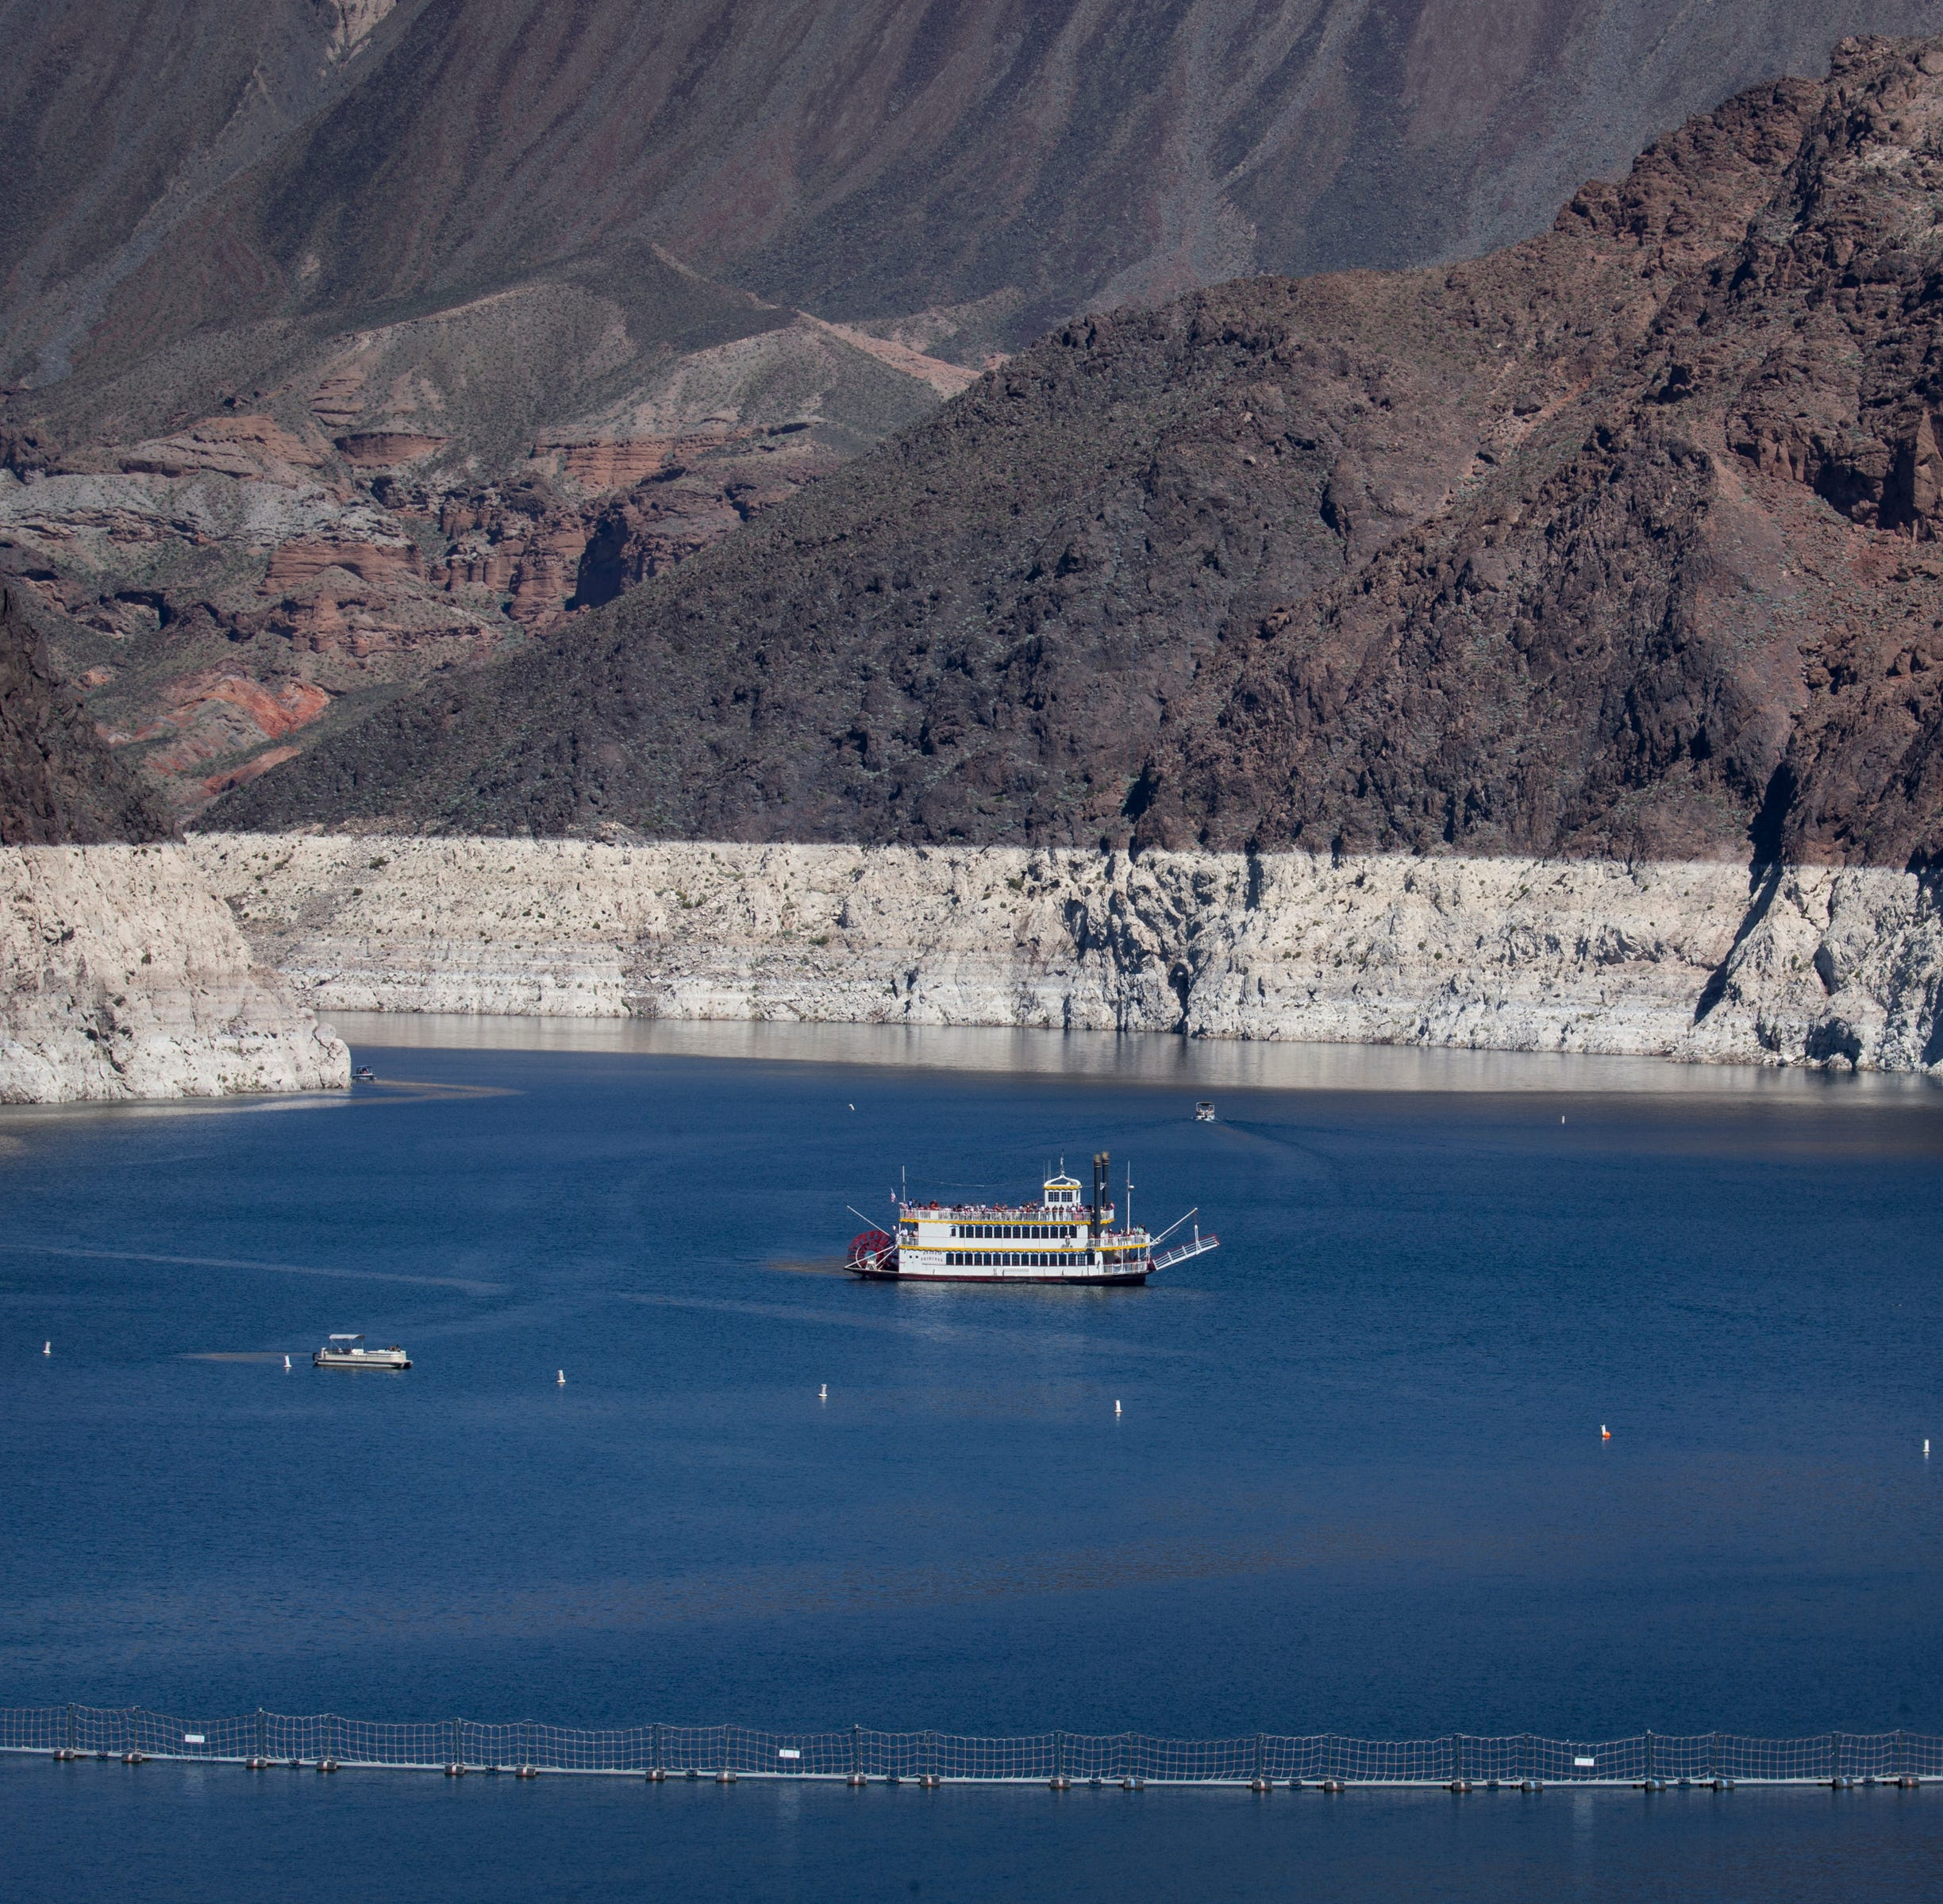 The crisis at Lake Mead is about more than just a lack of water